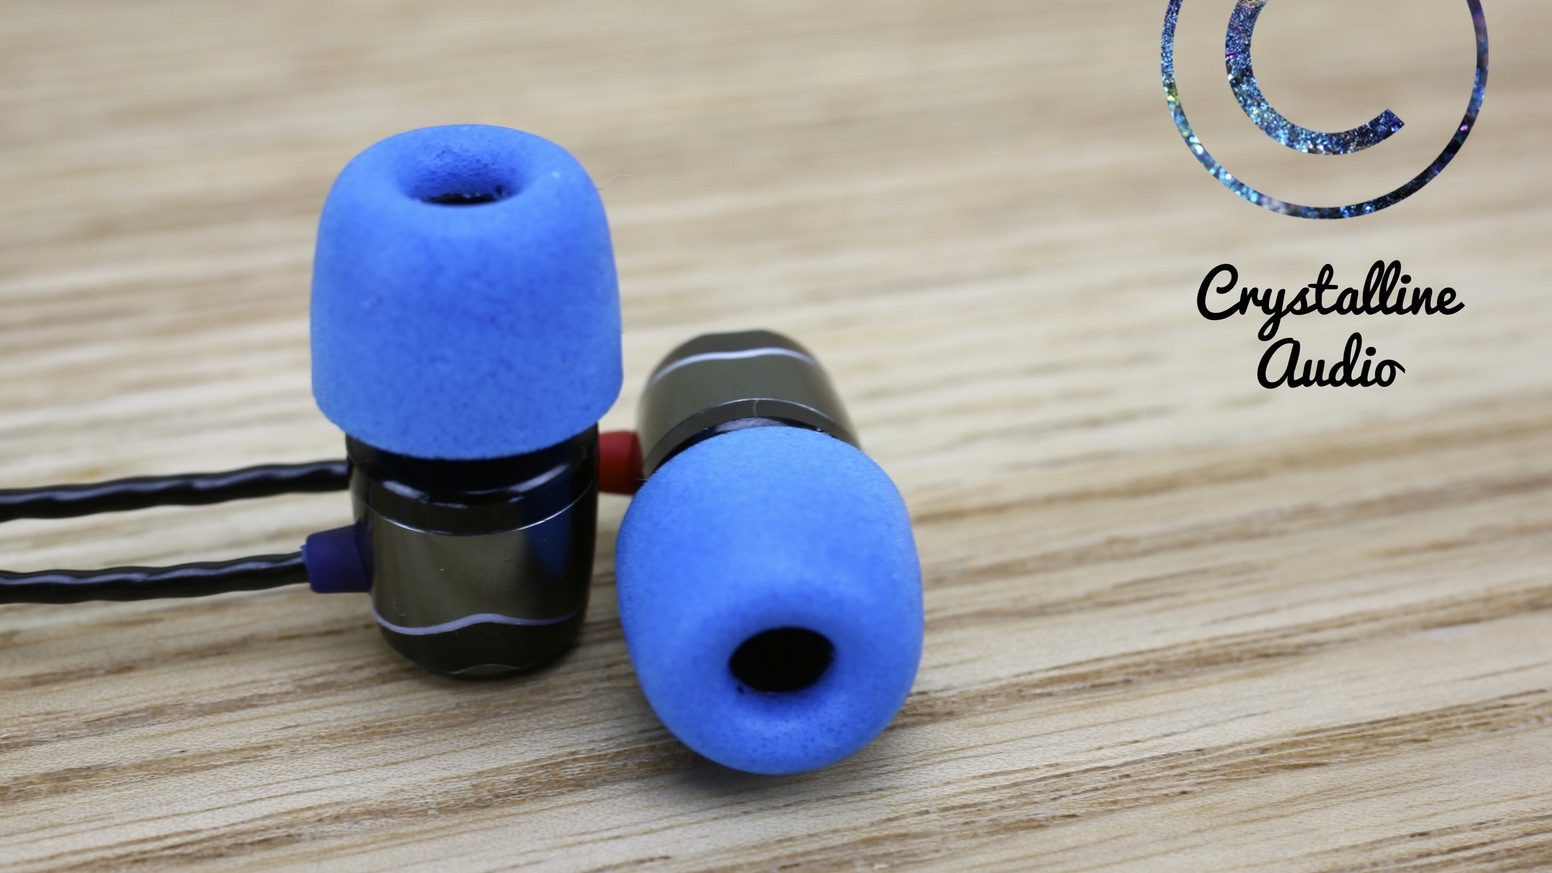 A long lasting earphone tip made from advanced materials to enhance noise isolation, comfort and fit